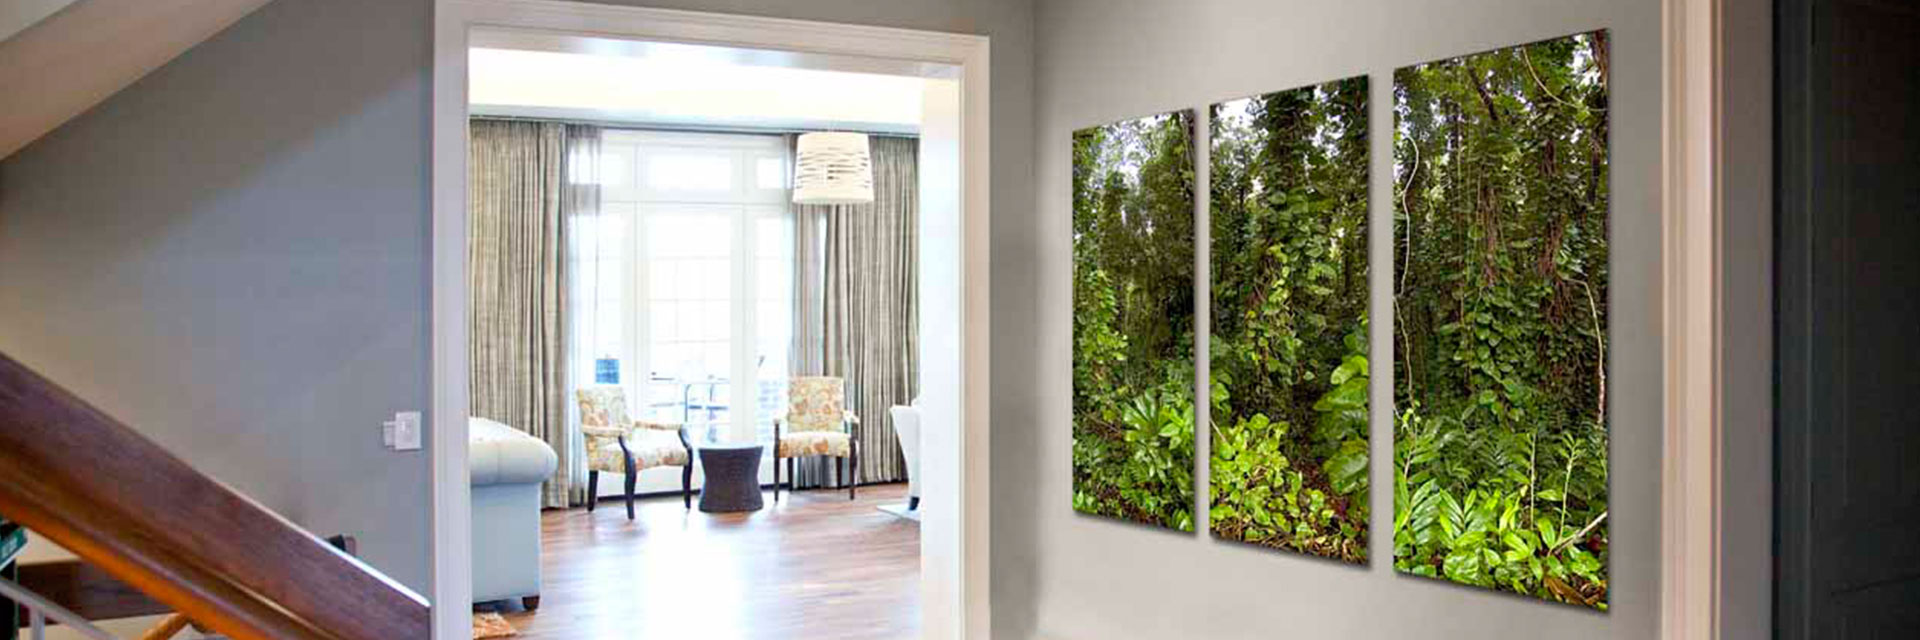 Seaberg Picture Framing An Artmill Group Company